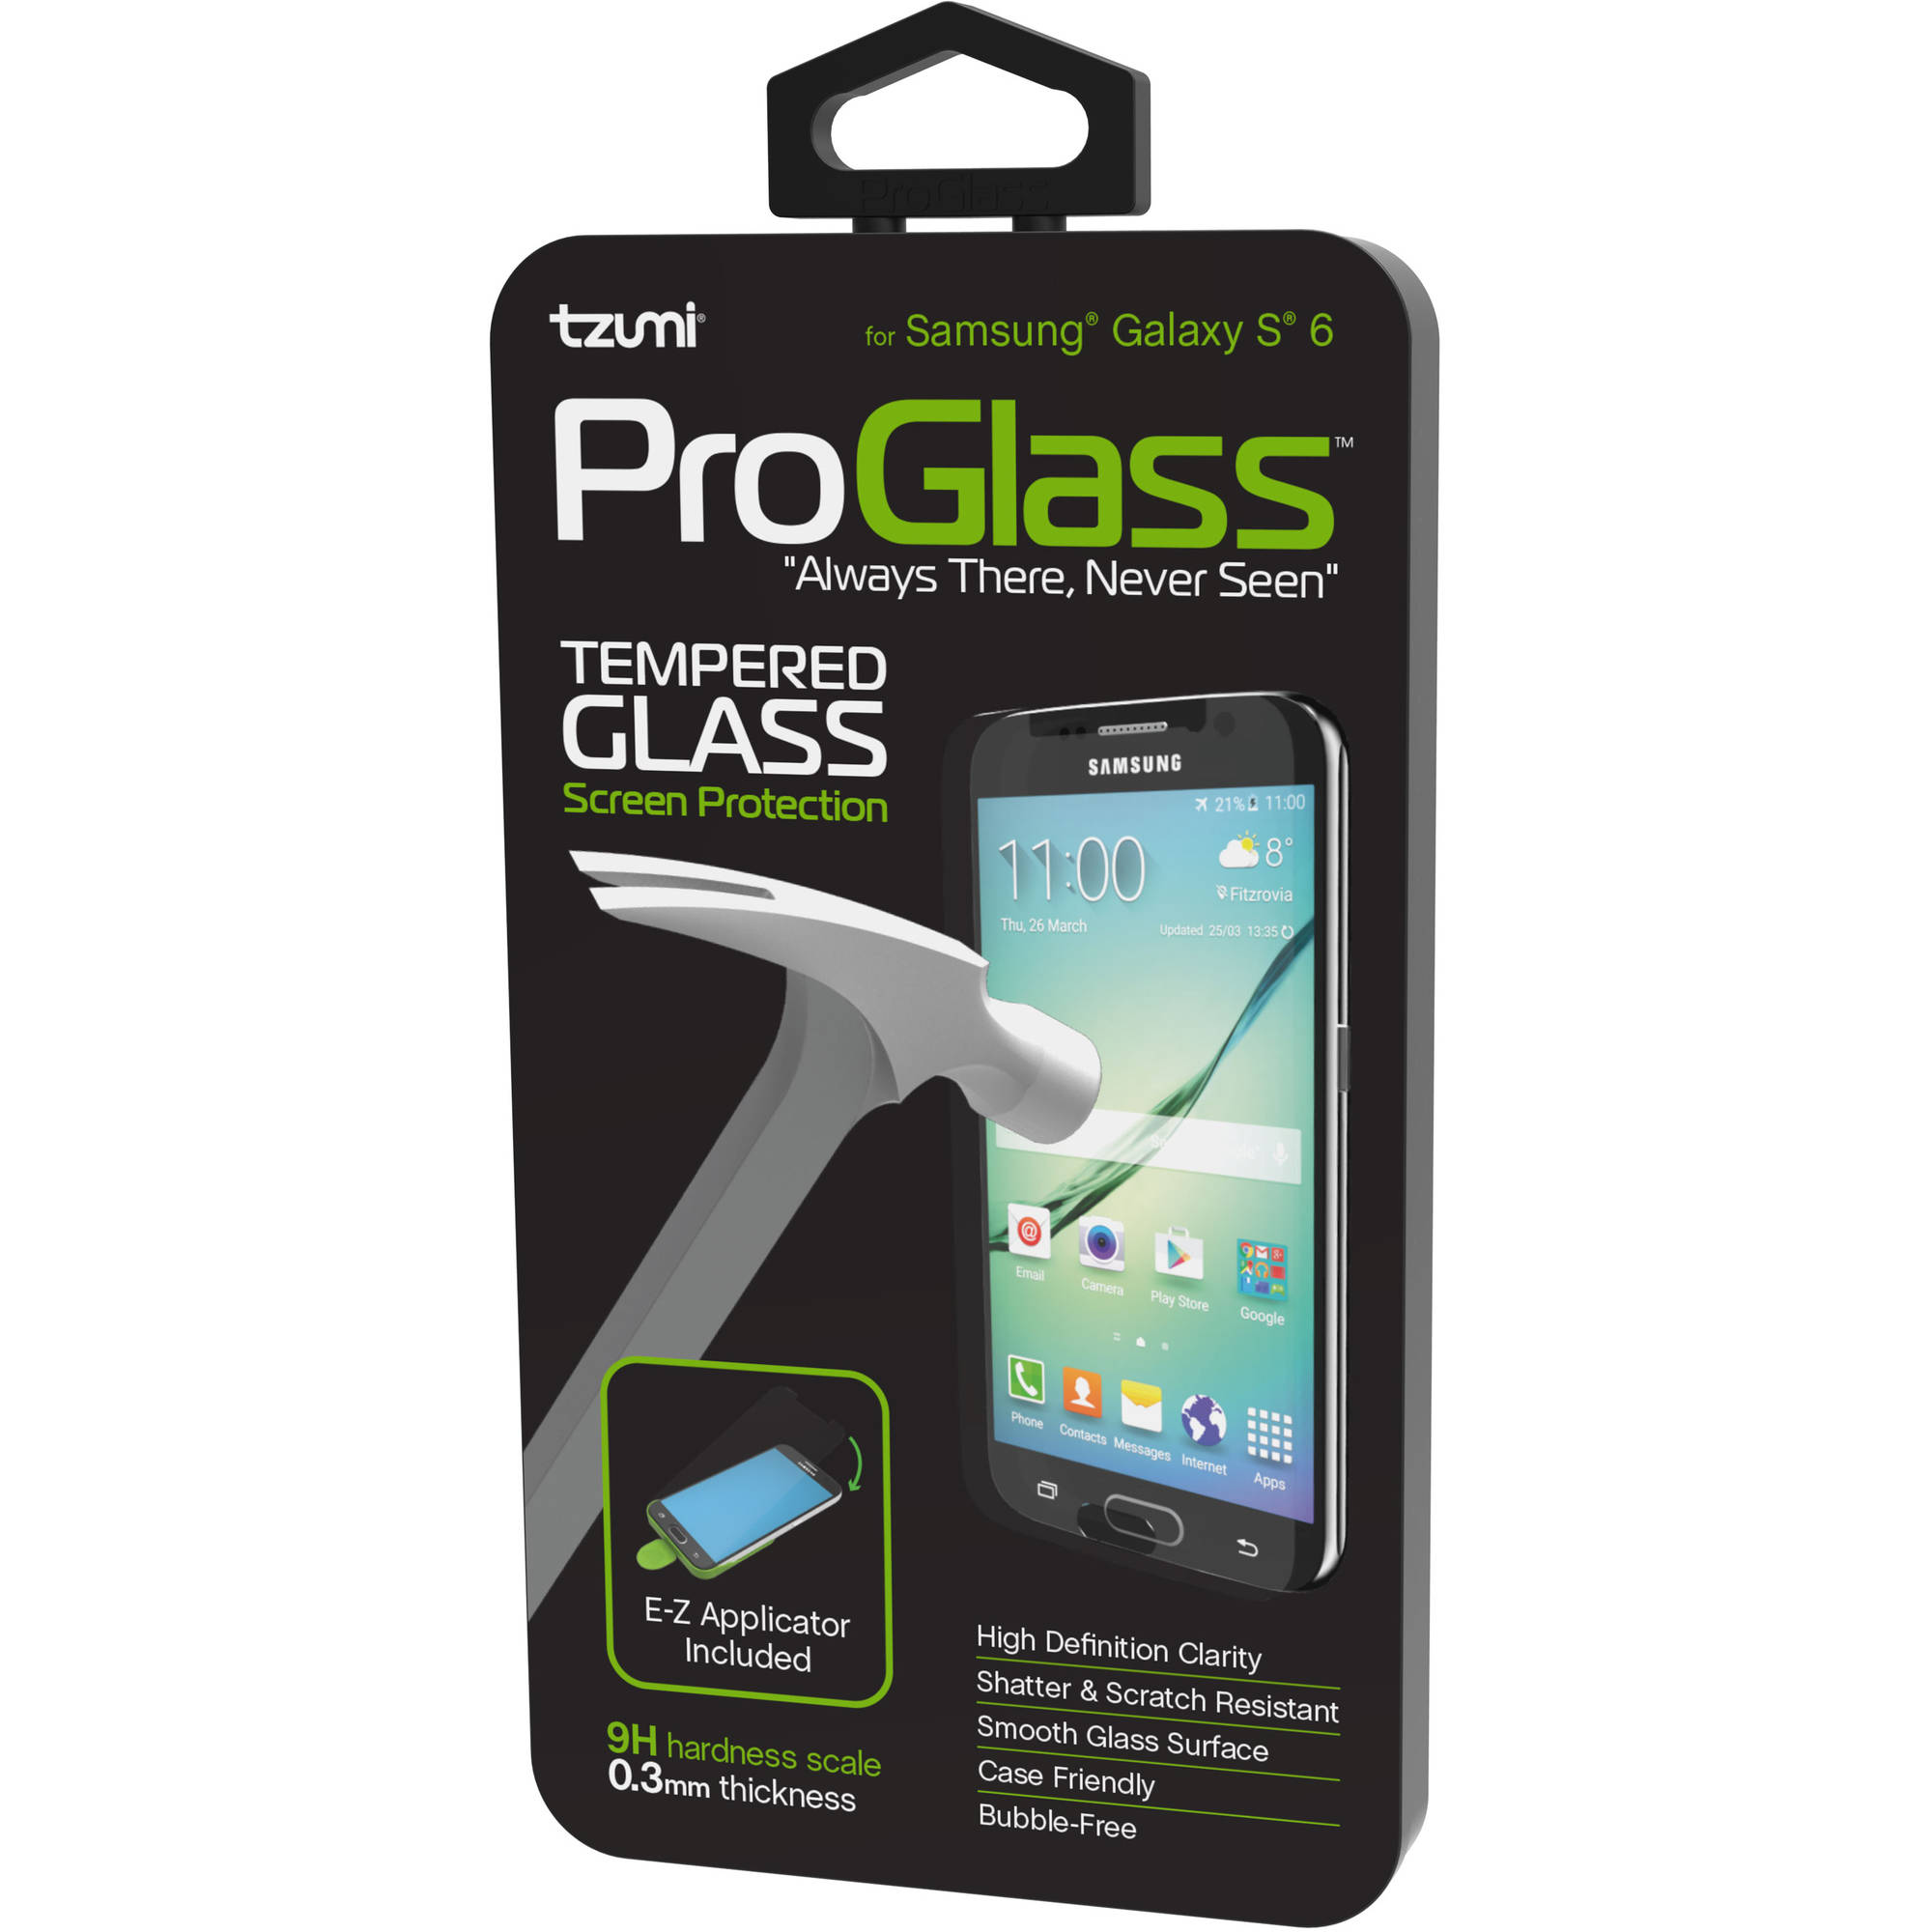 Tzumi ProGlass for Samsung Galaxy S6 - Premium Tempered Glass Screen Protector with Easy Application and Cleaning Kit